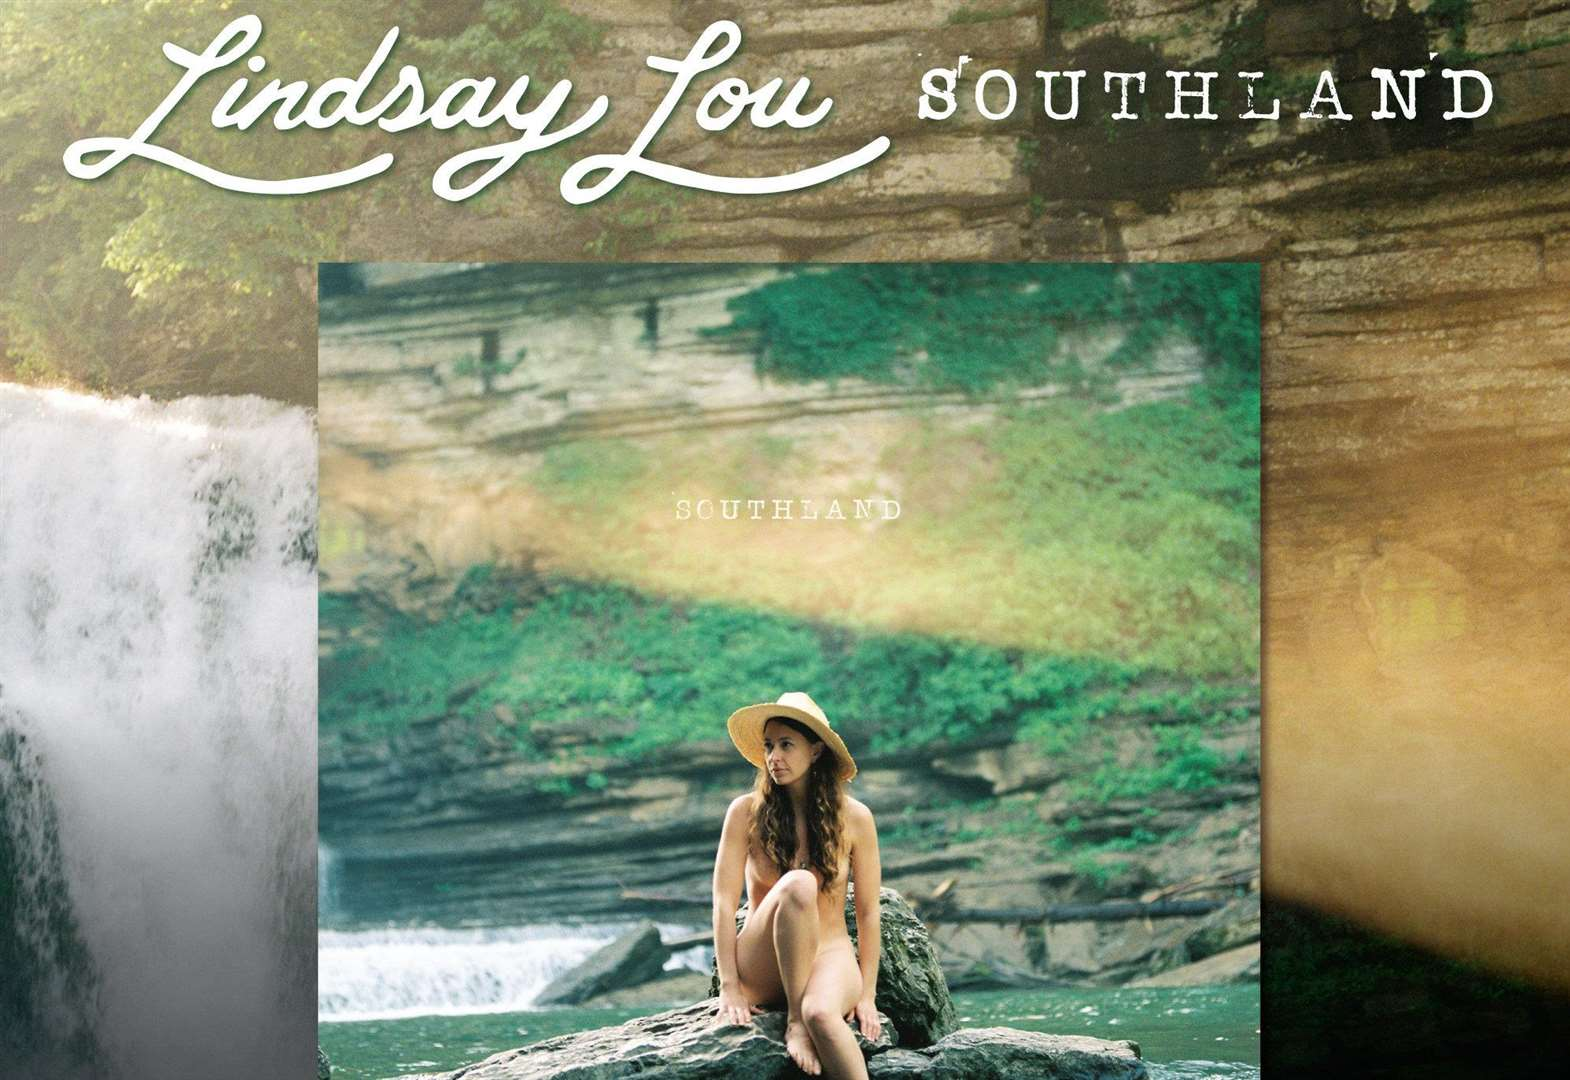 ALBUM REVIEW: Southland, Lindsay Lou, Lindsay Lou Music, Out Now